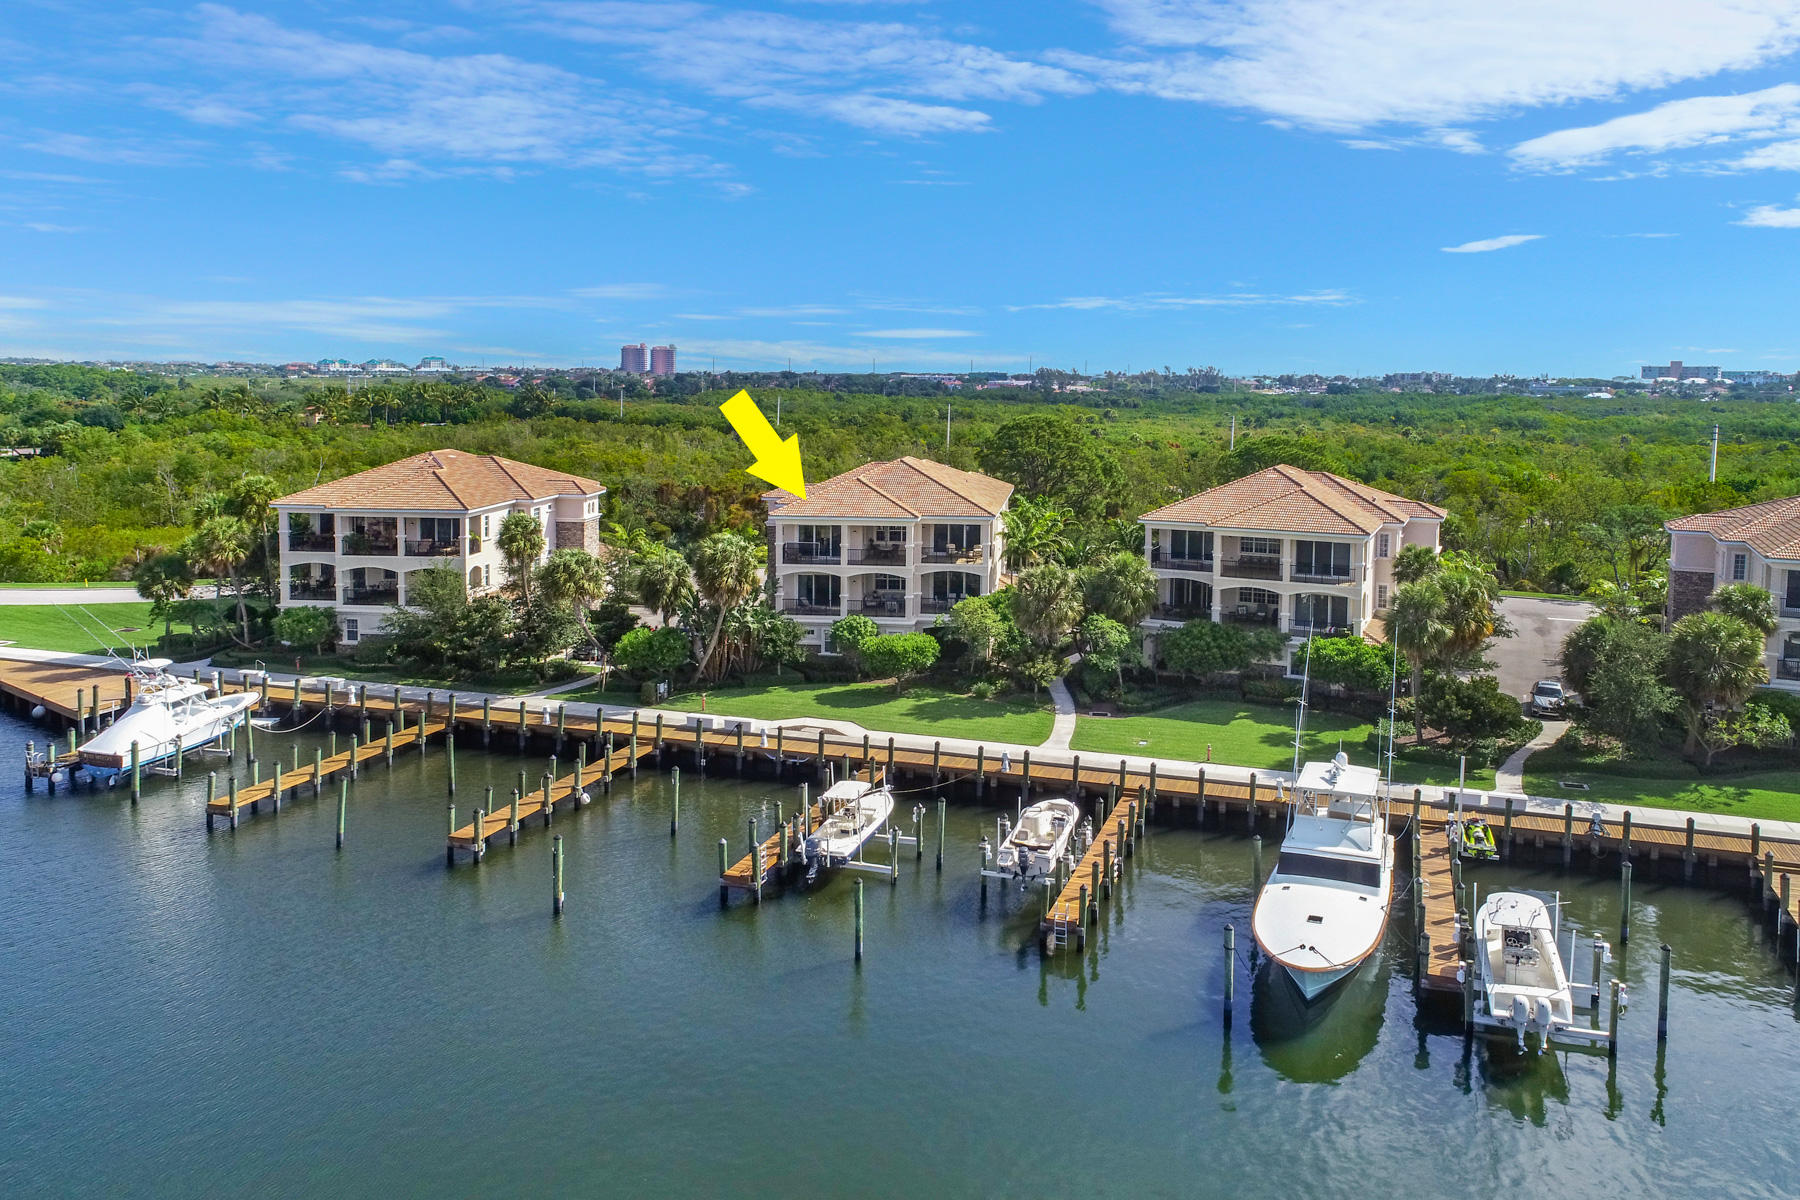 13611 Treasure Cove Circle, North Palm Beach, Florida 33408, 3 Bedrooms Bedrooms, ,2 BathroomsBathrooms,A,Condominium,Treasure Cove,RX-10524725